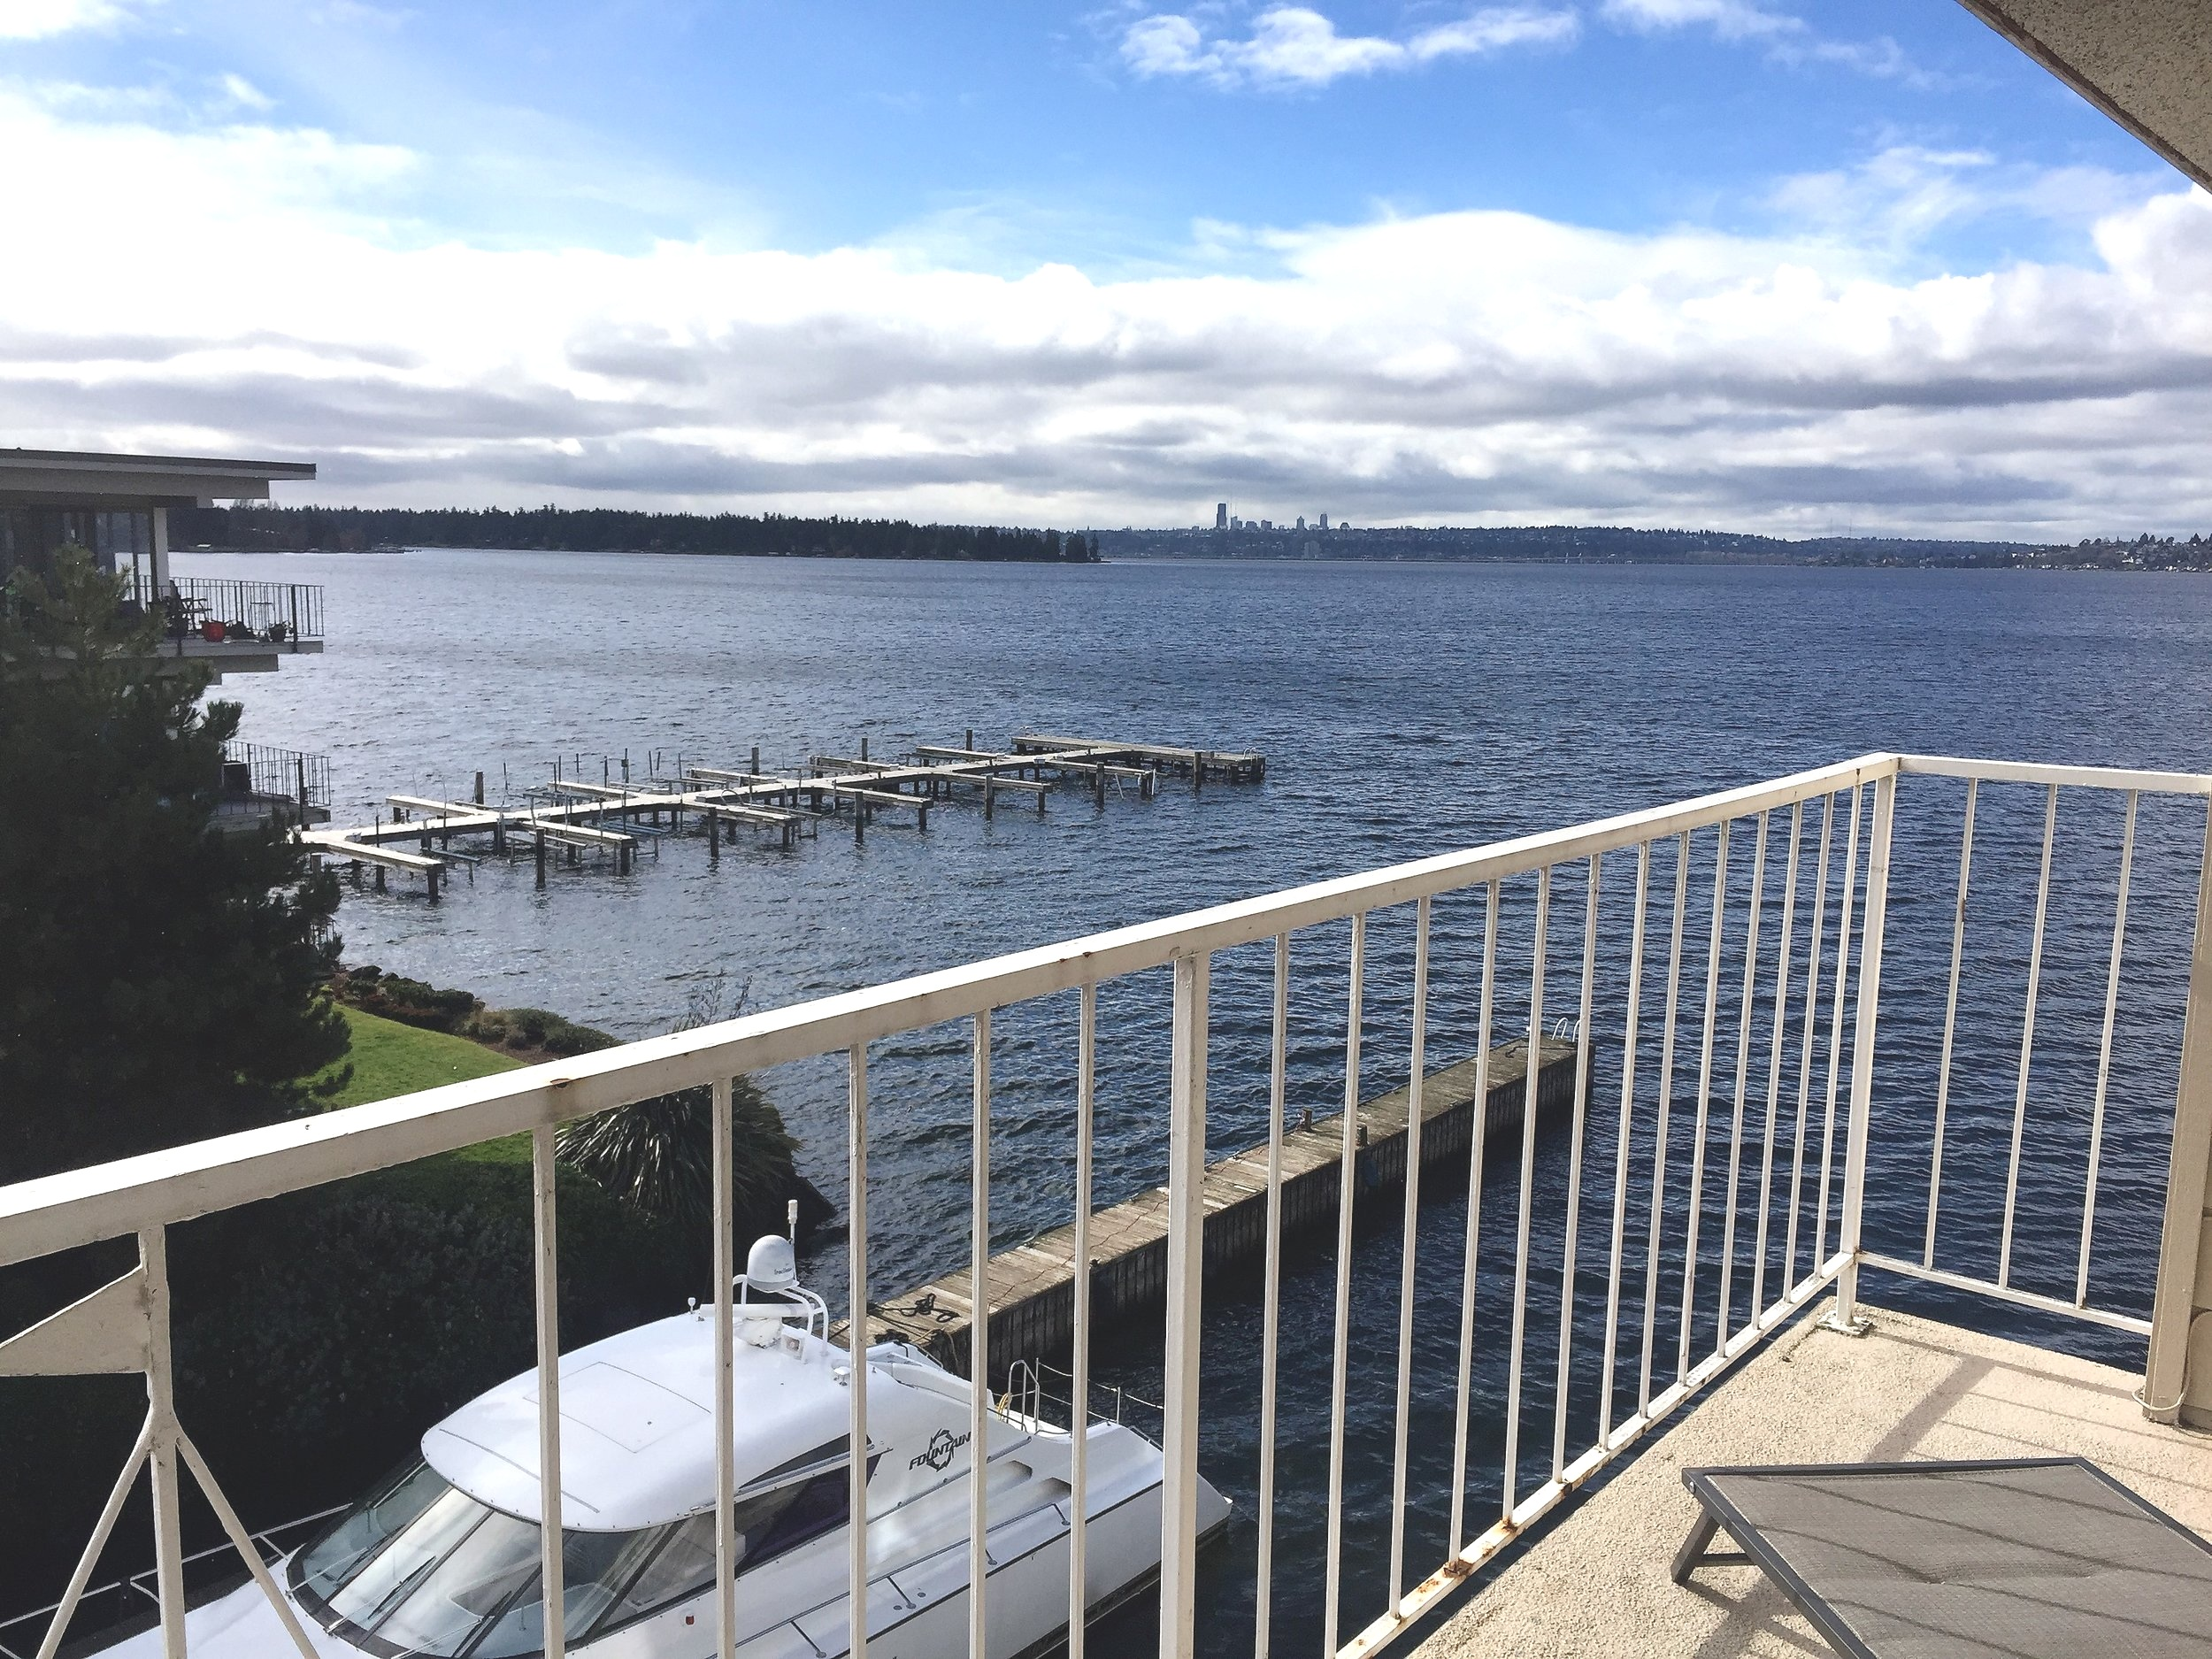 1 BEDROOM 1 BATH - APPROX 700 SQ FT - TOP FLOOR SUNNY SOUTH SIDE WITH SPECTACULAR VIEW OF THE LAKE ~COMPLETELY UPDATED AND REMODELED !~COVERED PARKING WITH ELEVATOR IN THE BUILDING ~ SORRY NO PETS ~ AVAILABLE 3/1/2019    Call Laura at Laura Westlund Realty Inc 425-827-6676